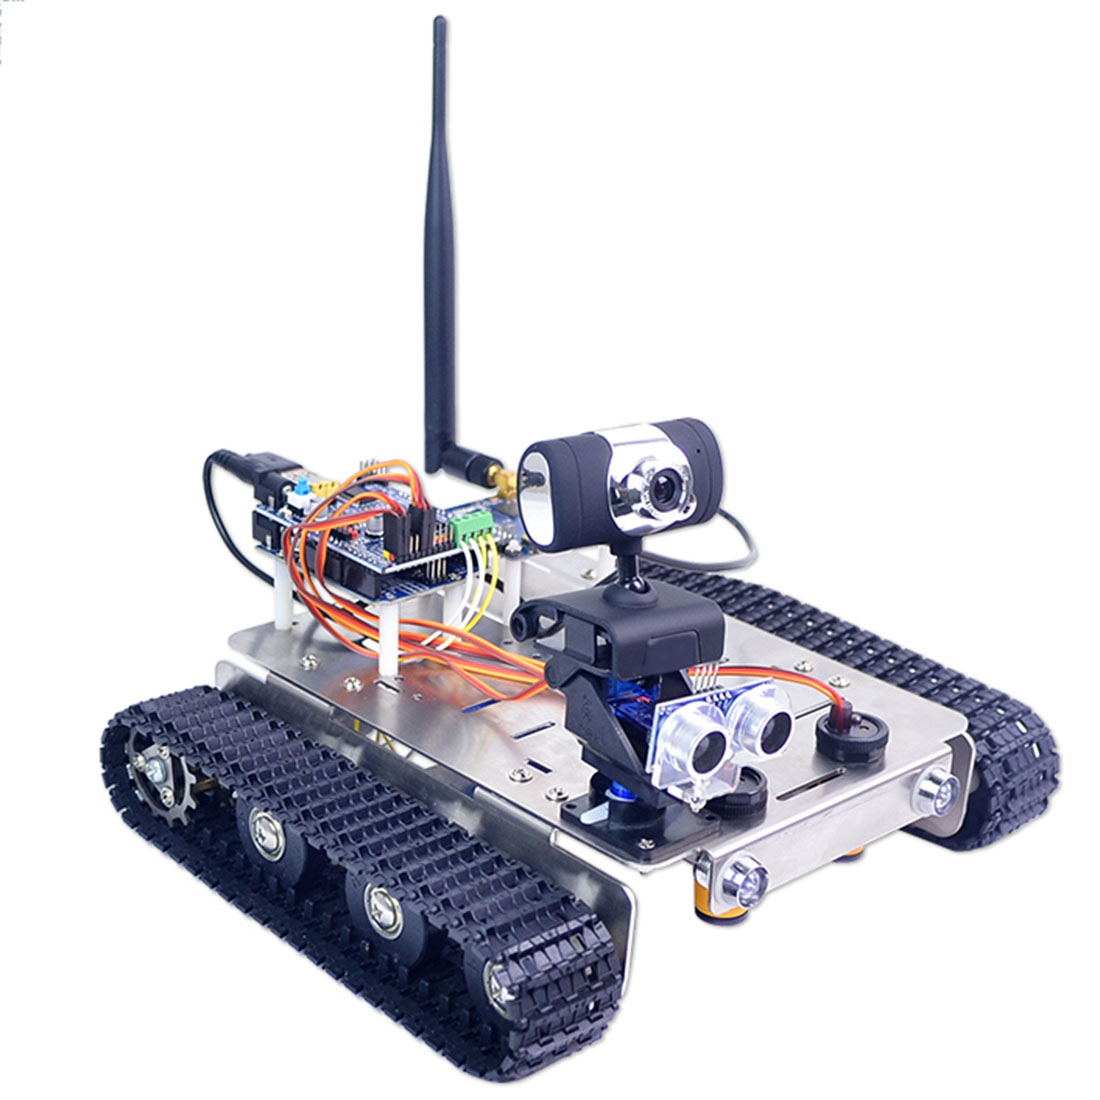 Programmable Robot DIY Wifi + Bluetooth Stainless Steel Chassis Track Tank Steam Educational Car With Graphic Programming XR